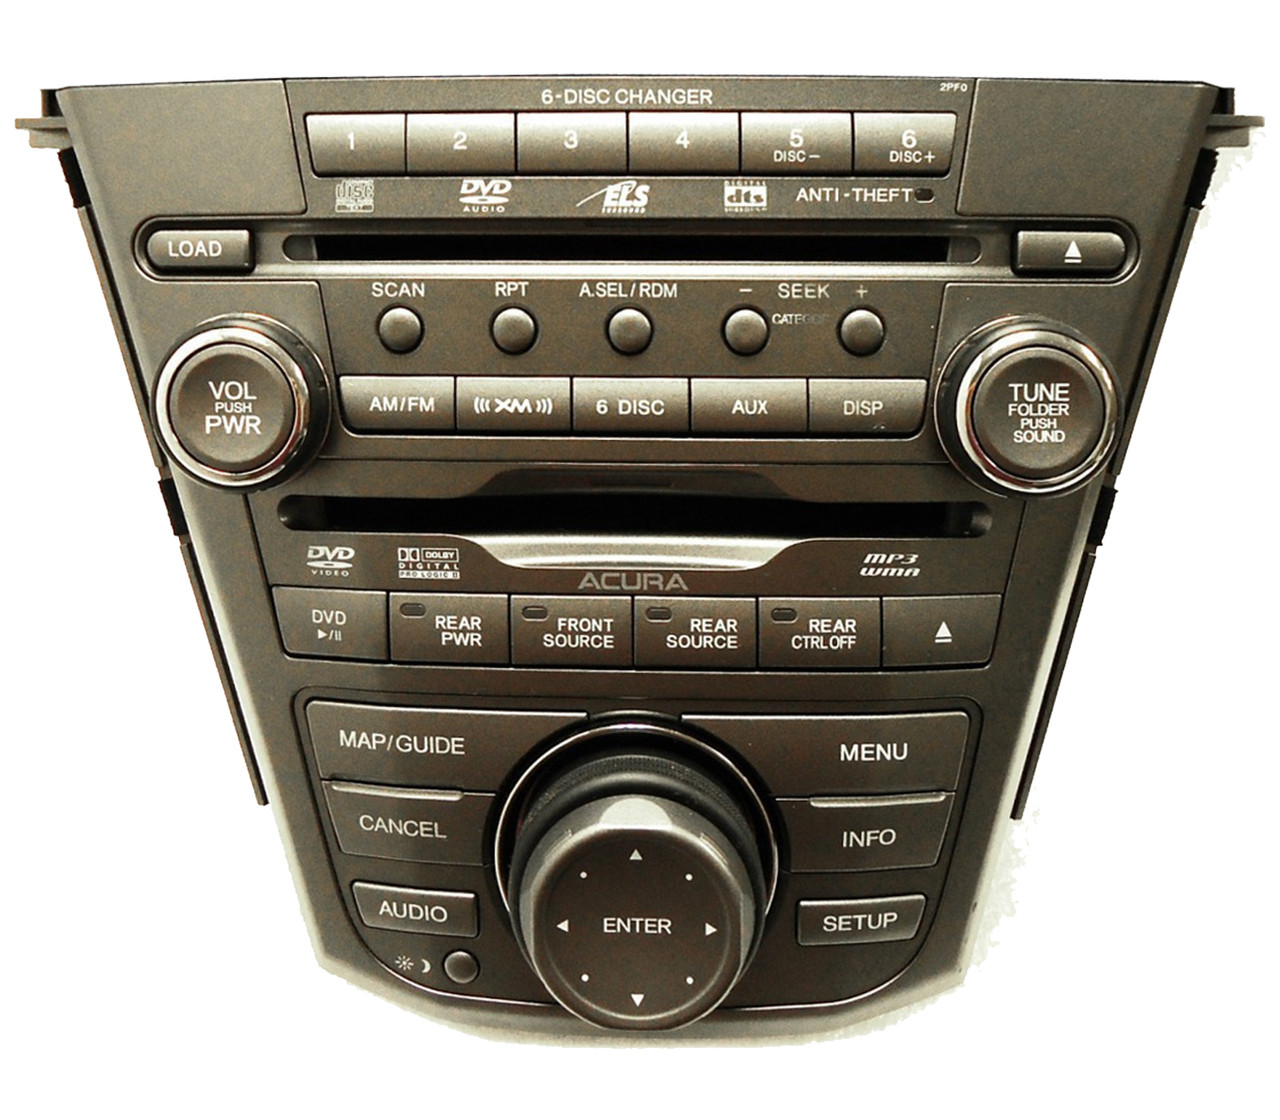 ACURA MDX Radio Navigation Teck 6 Disc Changer MP3 CD DVD